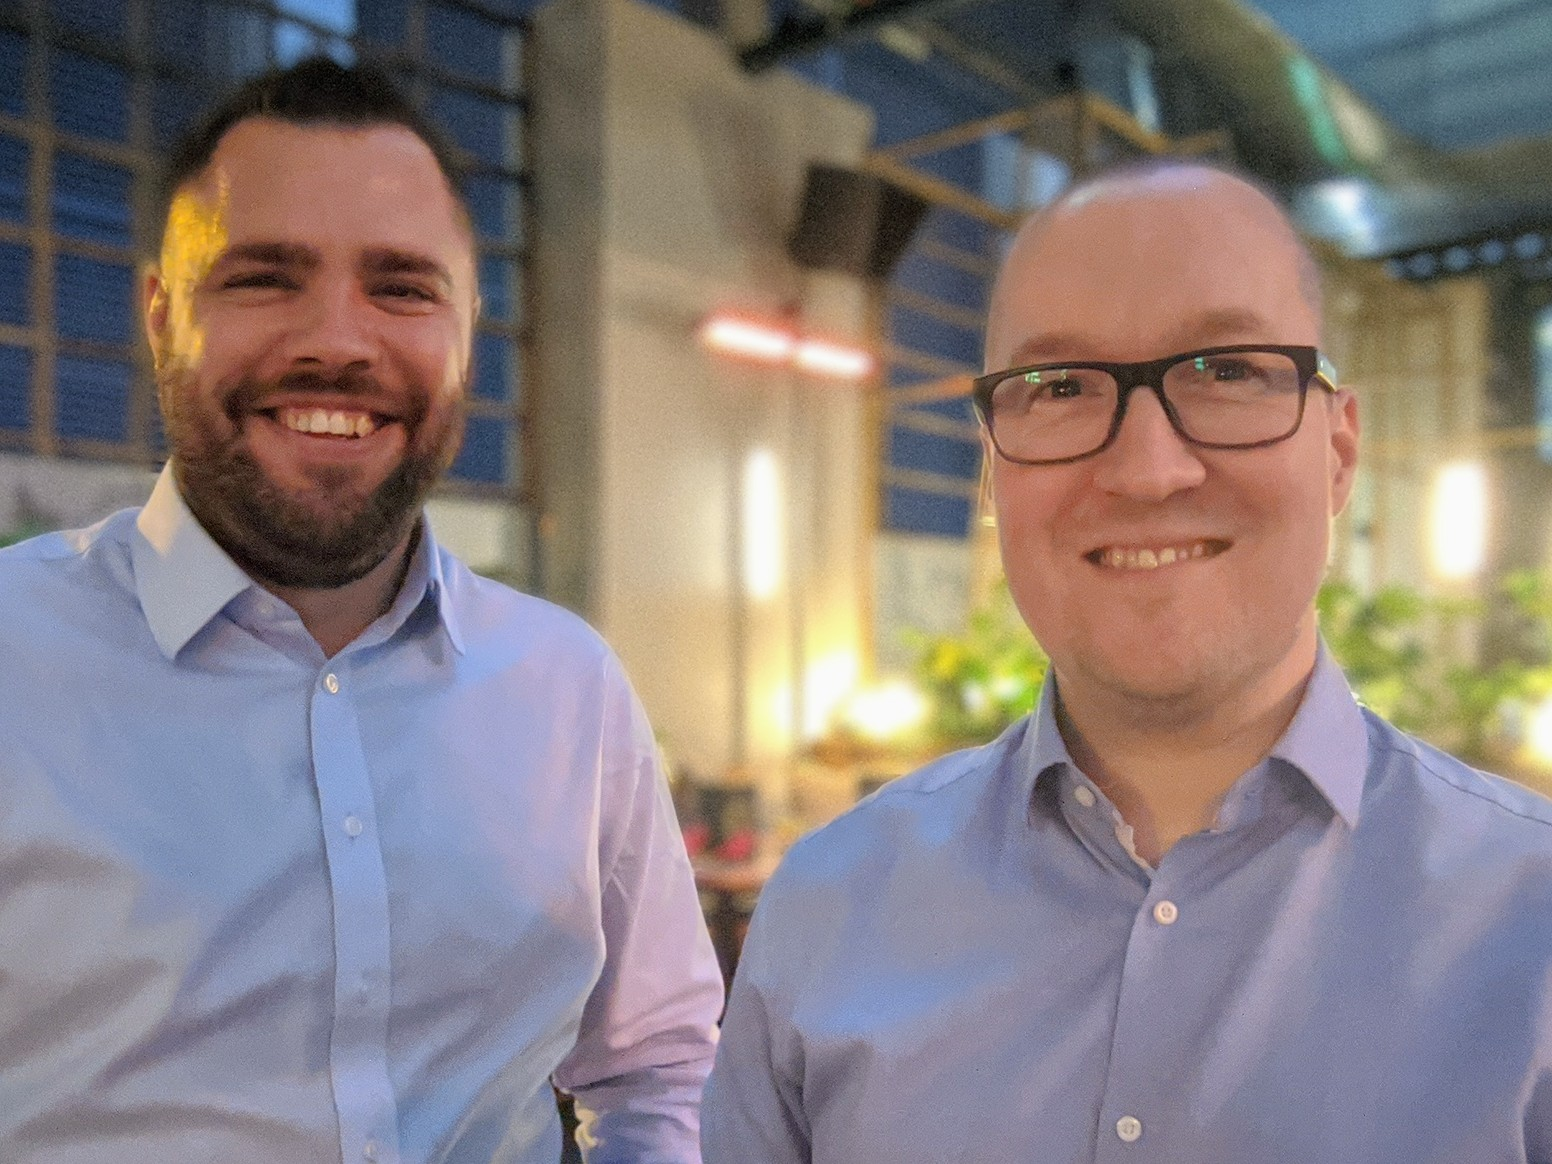 Ovyo Launches Into the Market, Re-Imagining the Tech Service Landscape in 2020